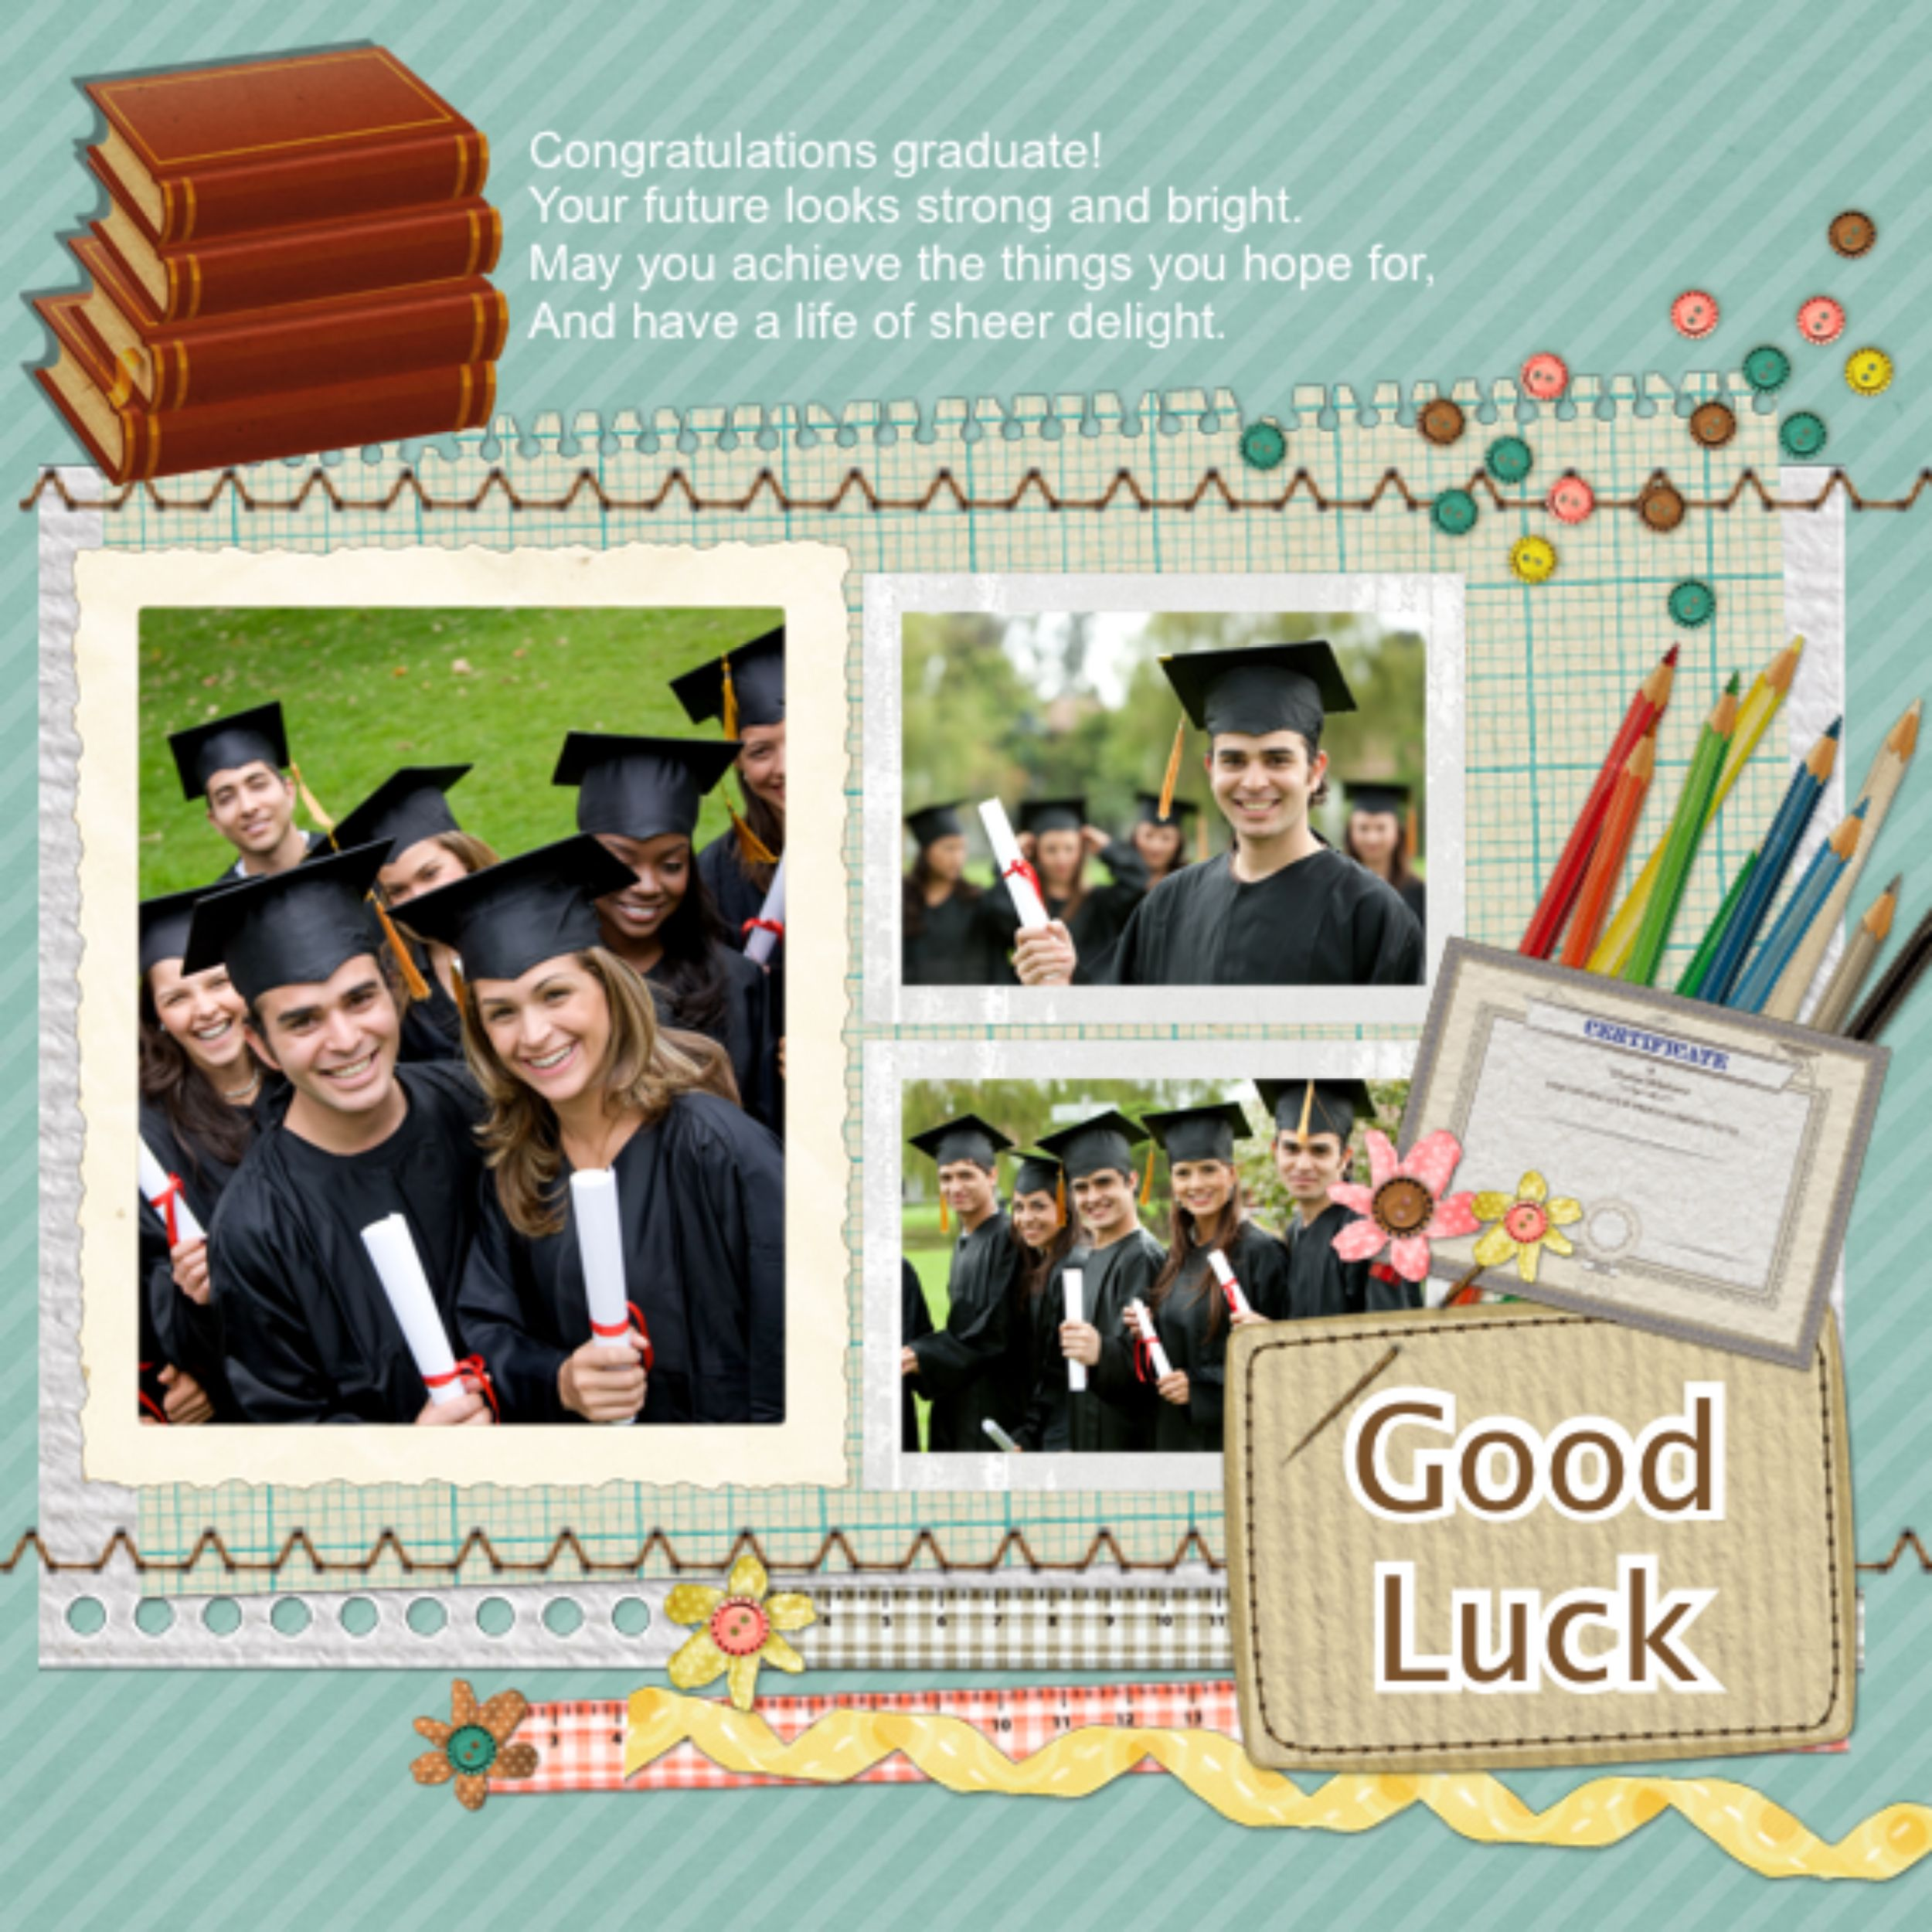 How to scrapbook on mac - Use This Shinning Scrapbook To May Your Friends Achieve The Things They Hope For